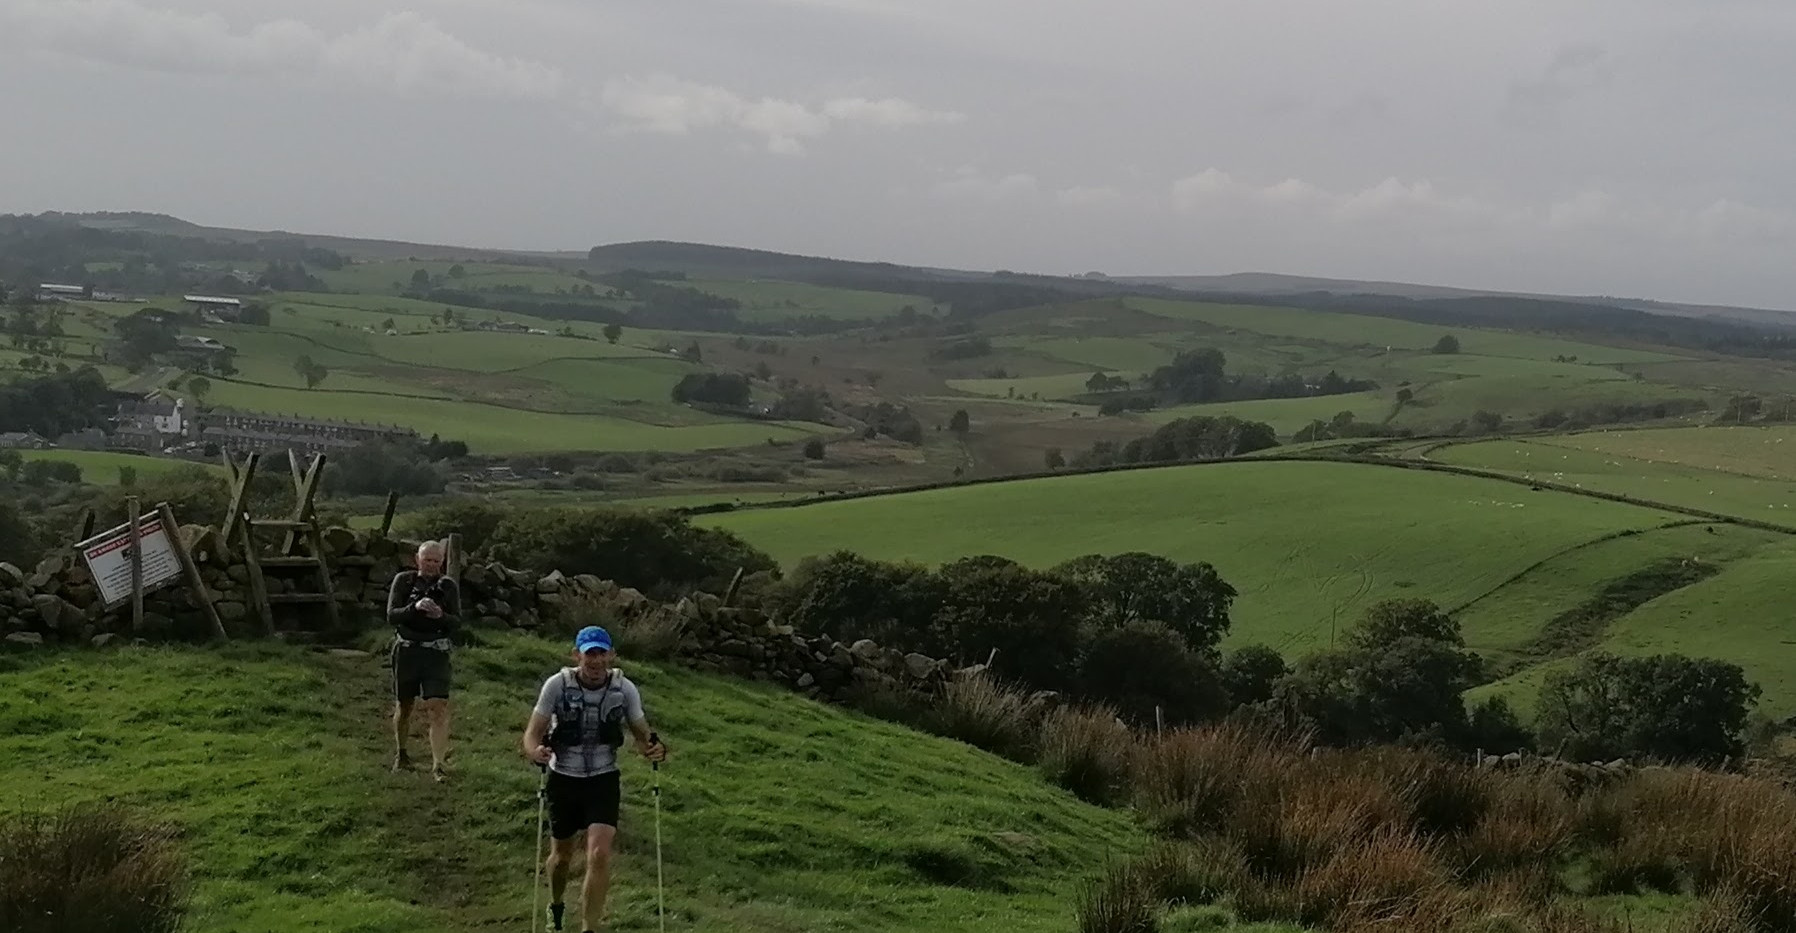 Approaching Checkpoint 3 with John